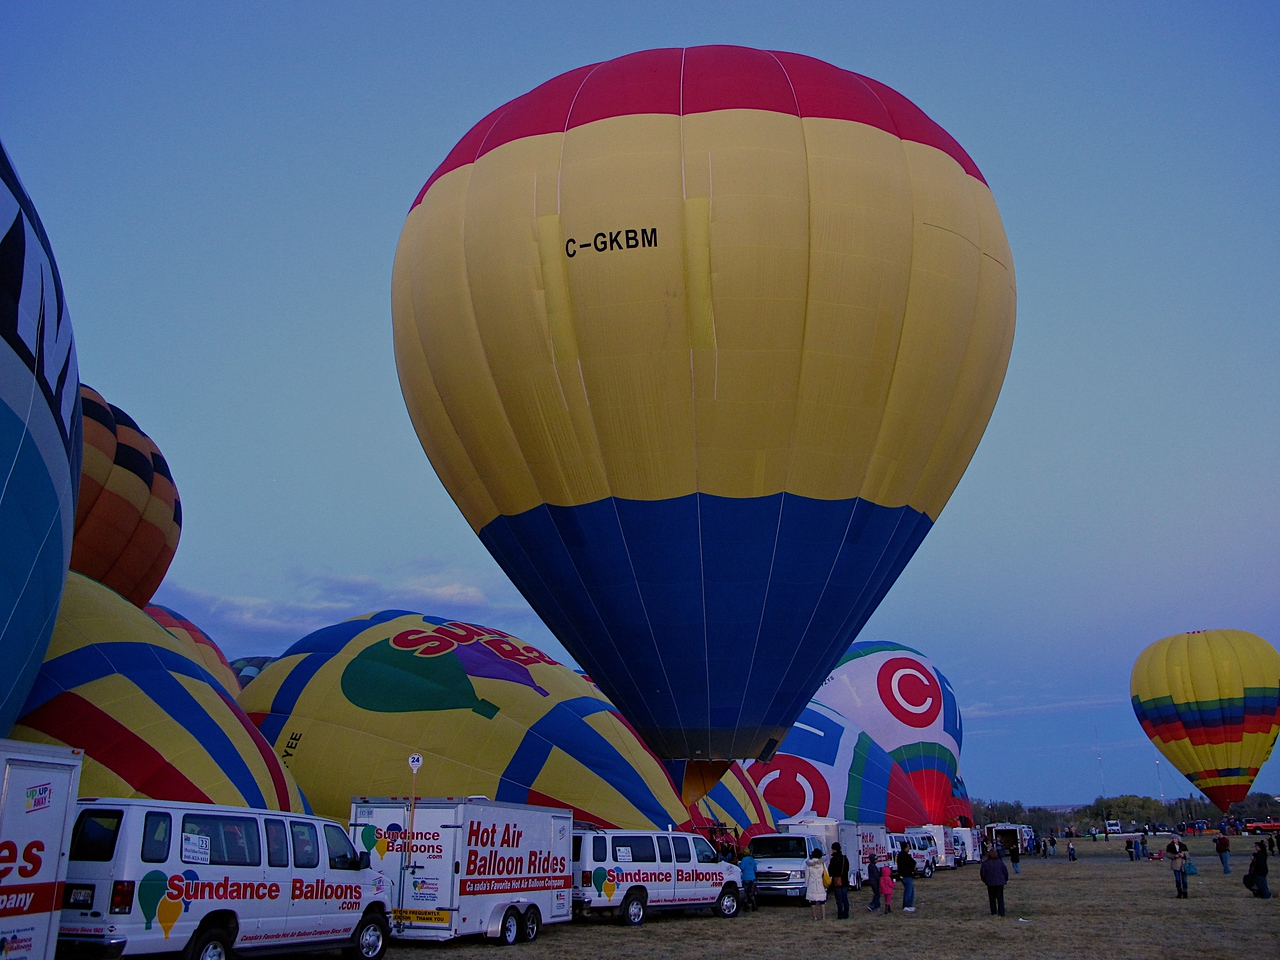 The balloon fiesta began in 1972 as the highlight of a 50th birthday celebration for 770 KOB Radio. Radio station manager Dick McKee asked Sid Cutter, owner of Cutter Flying Service and the first person to own a hot air balloon in New Mexico, if KOB could use his new hot-air balloon as part of the festivities. The two began discussing ballooning, along with conversation and help from Oscar Kratz, and McKee asked what the largest gathering of hot air balloons to date had been which was 19 balloons in England.